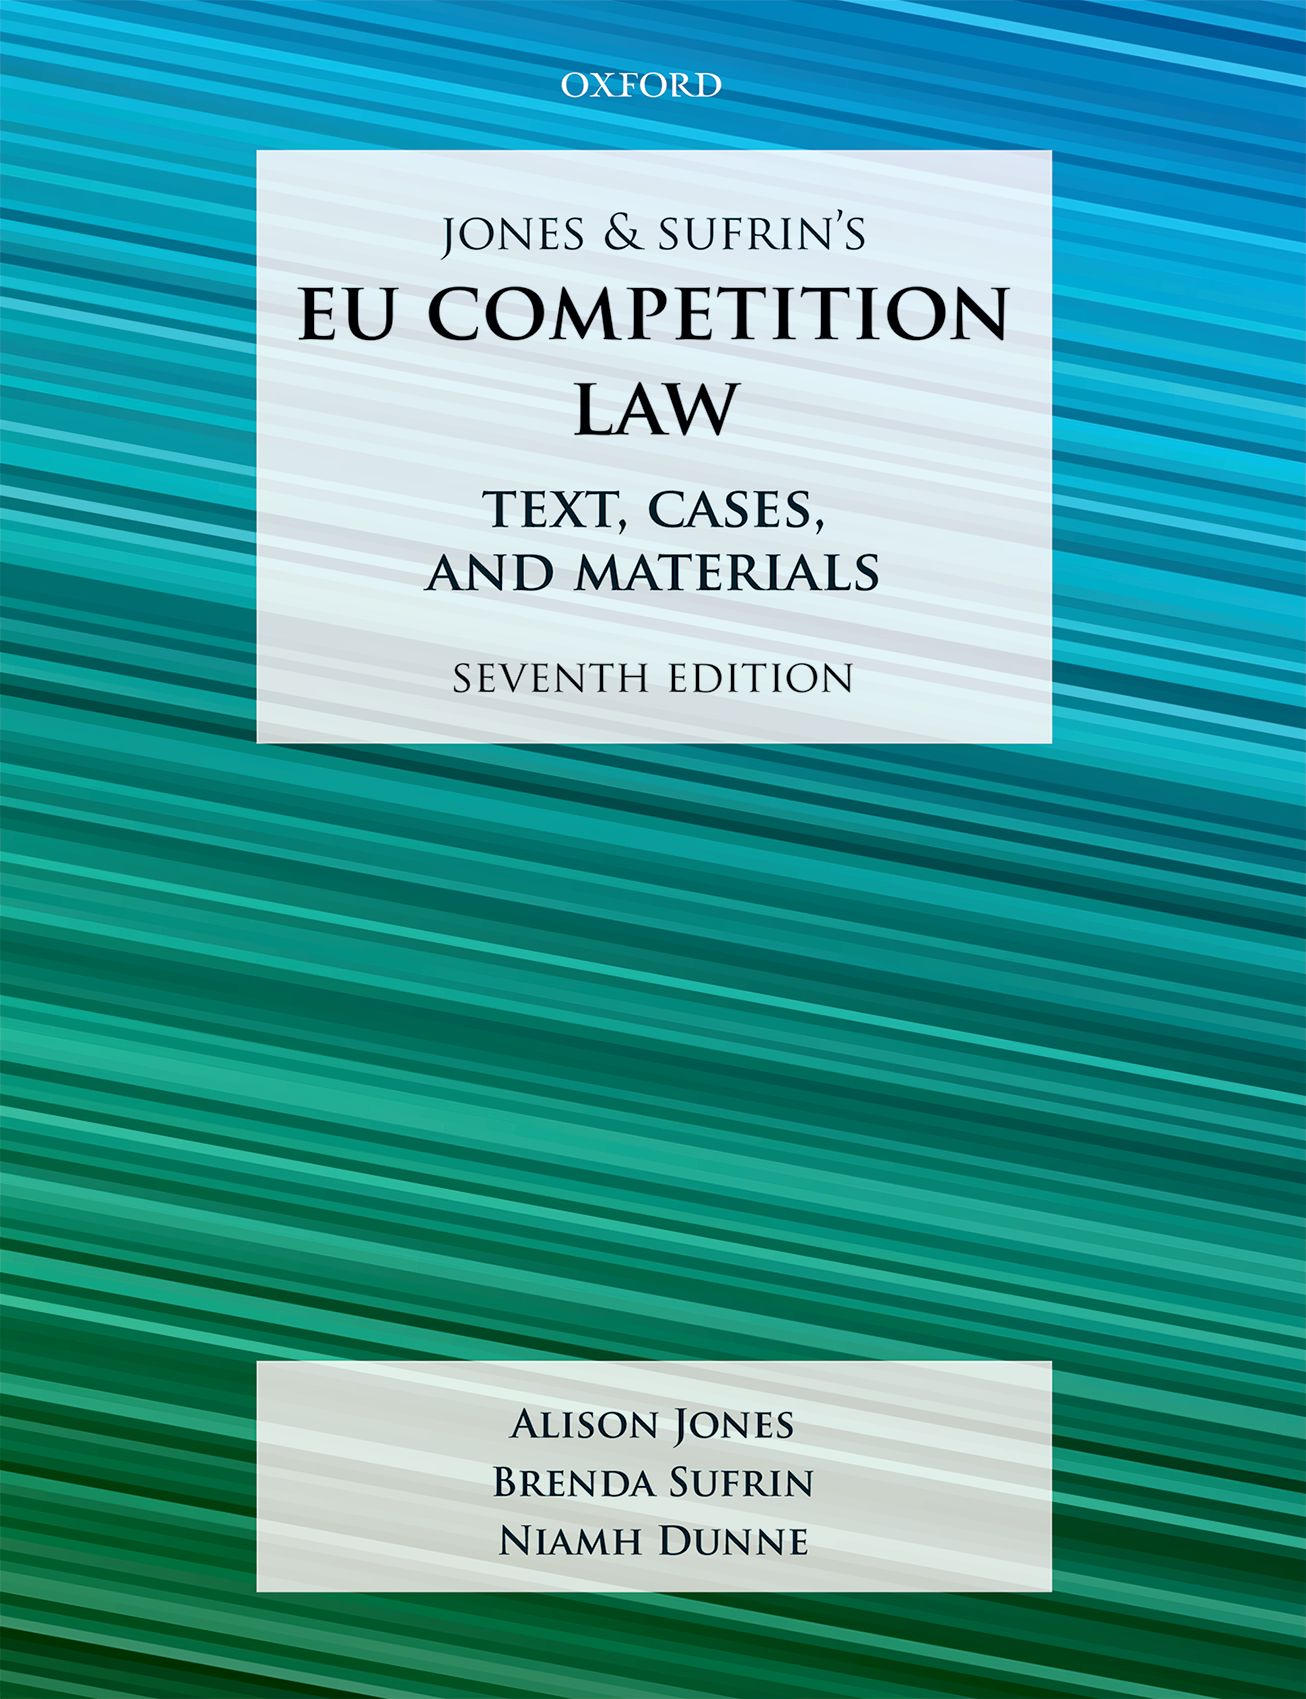 Jones & Sufrin's EU Competition Law: Text, Cases, and Materials 7e Student Resources